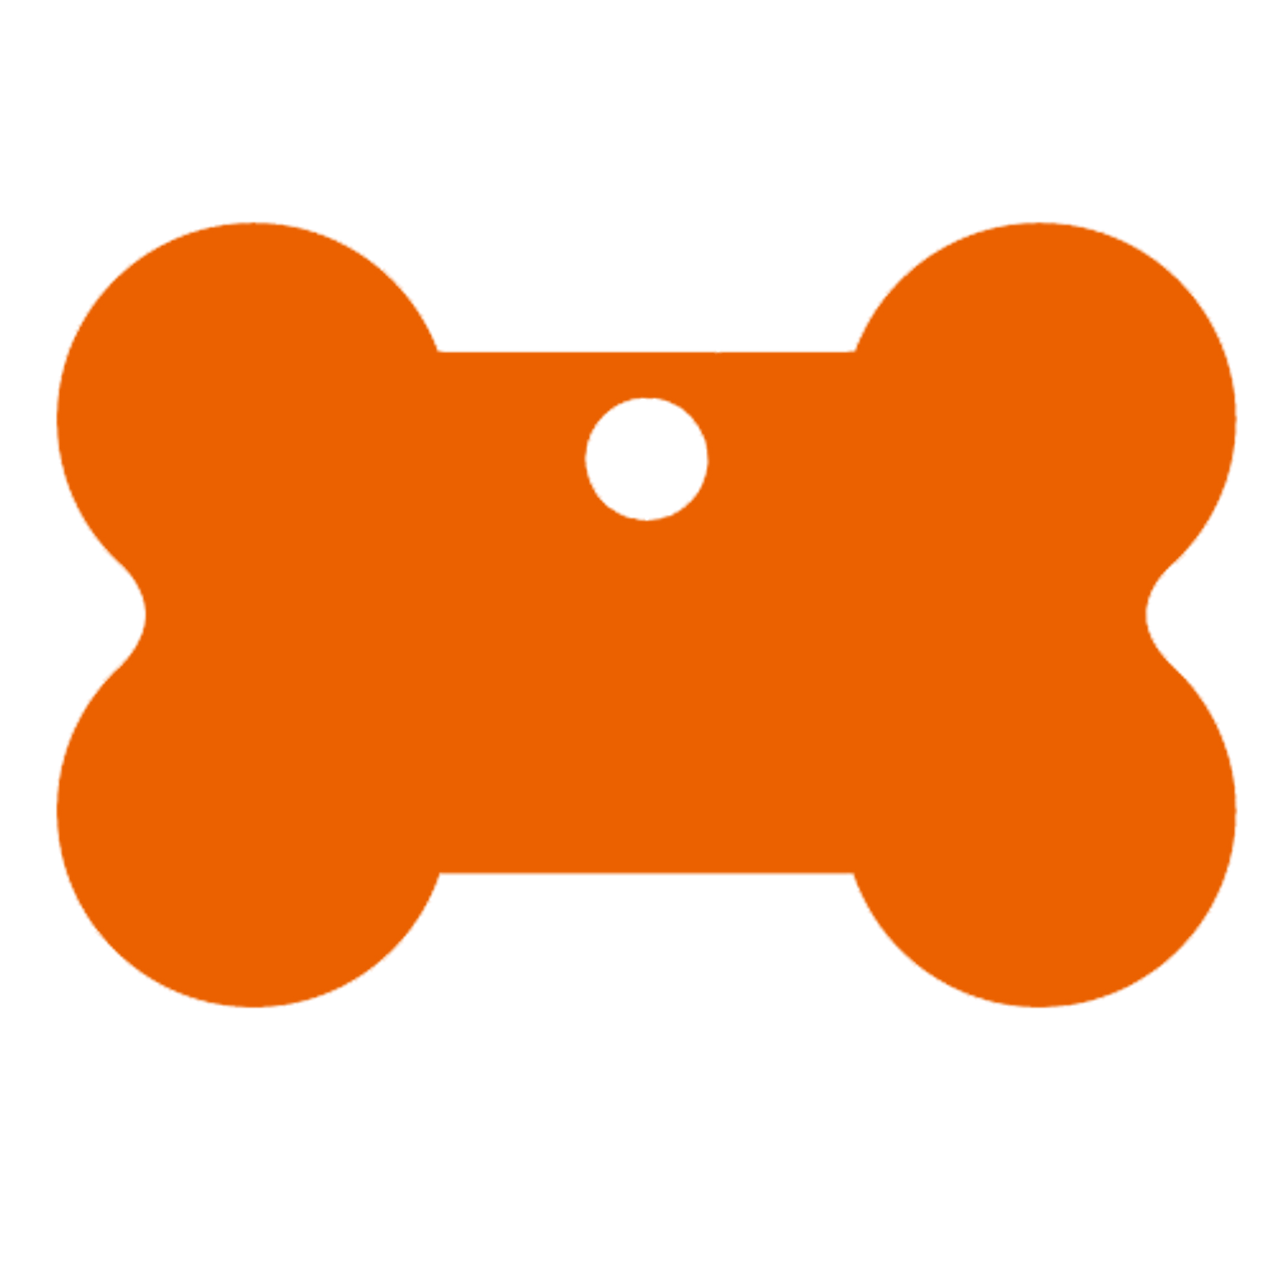 Orange blank bone shaped pet dog tag made of anodized aluminum. This tag is commonly purchased by pet stores, animal shelters and government organizations.